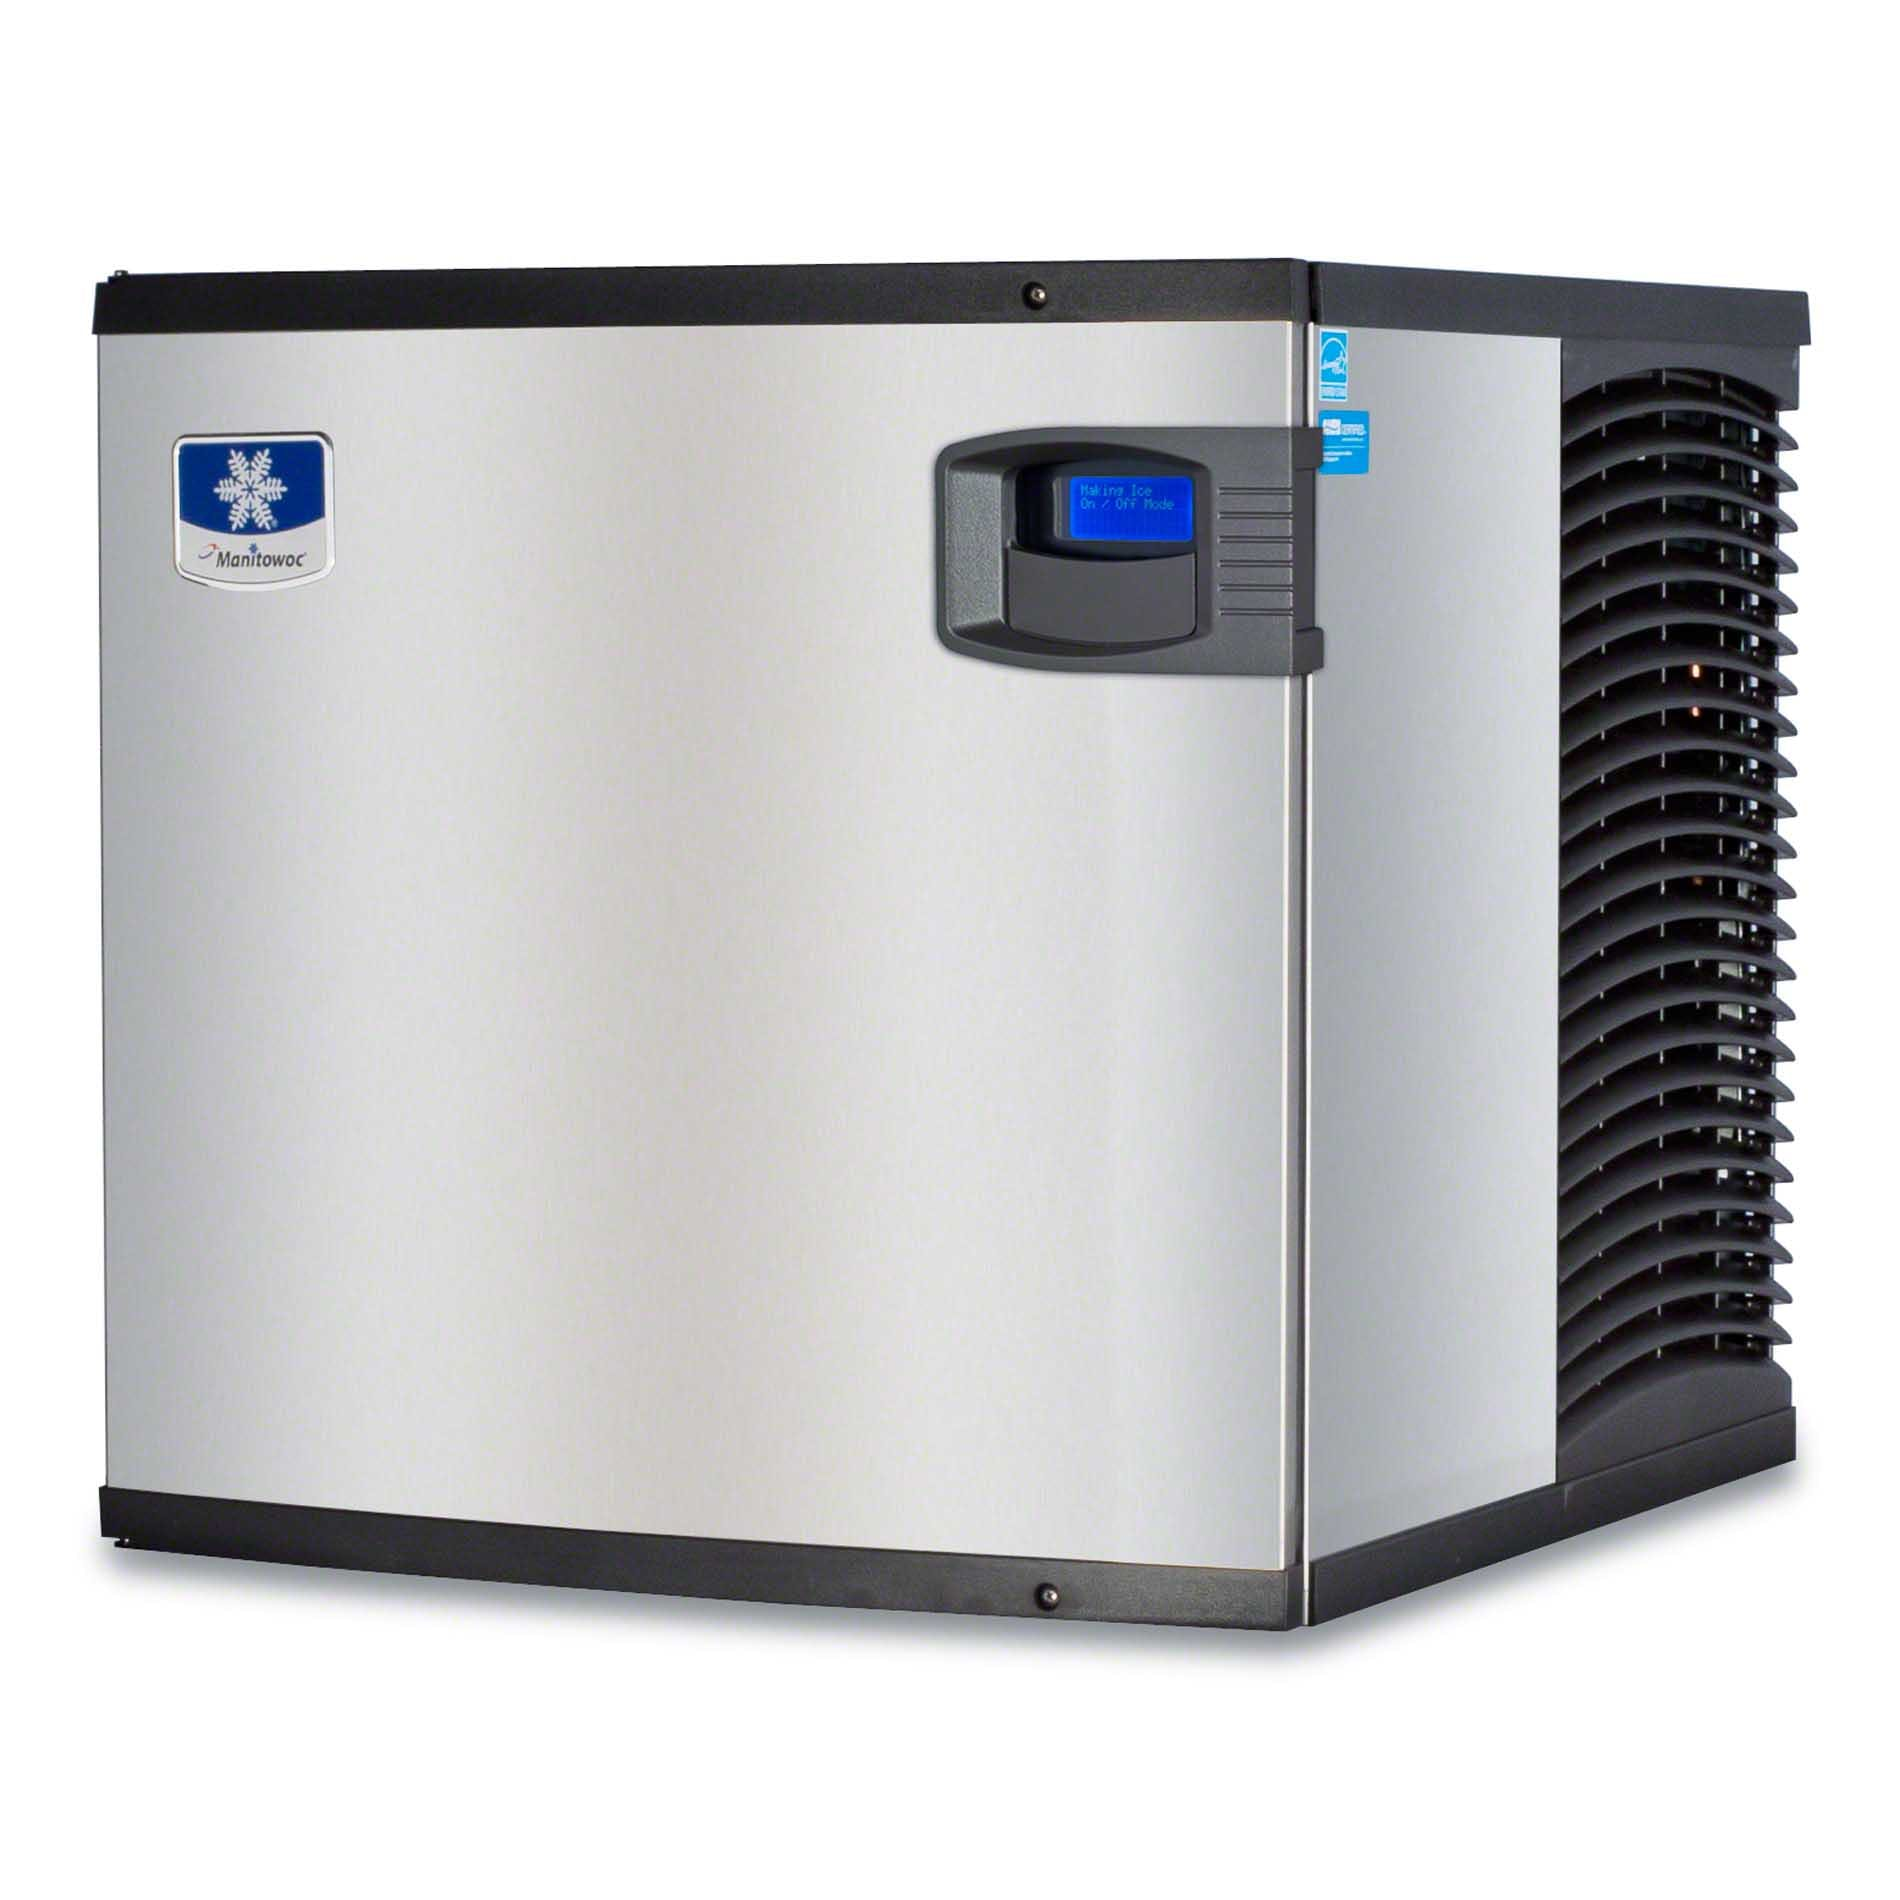 Manitowoc - ID-0522A 475 lb Full Size Cube Ice Machine - Indigo Series Ice machine sold by Food Service Warehouse